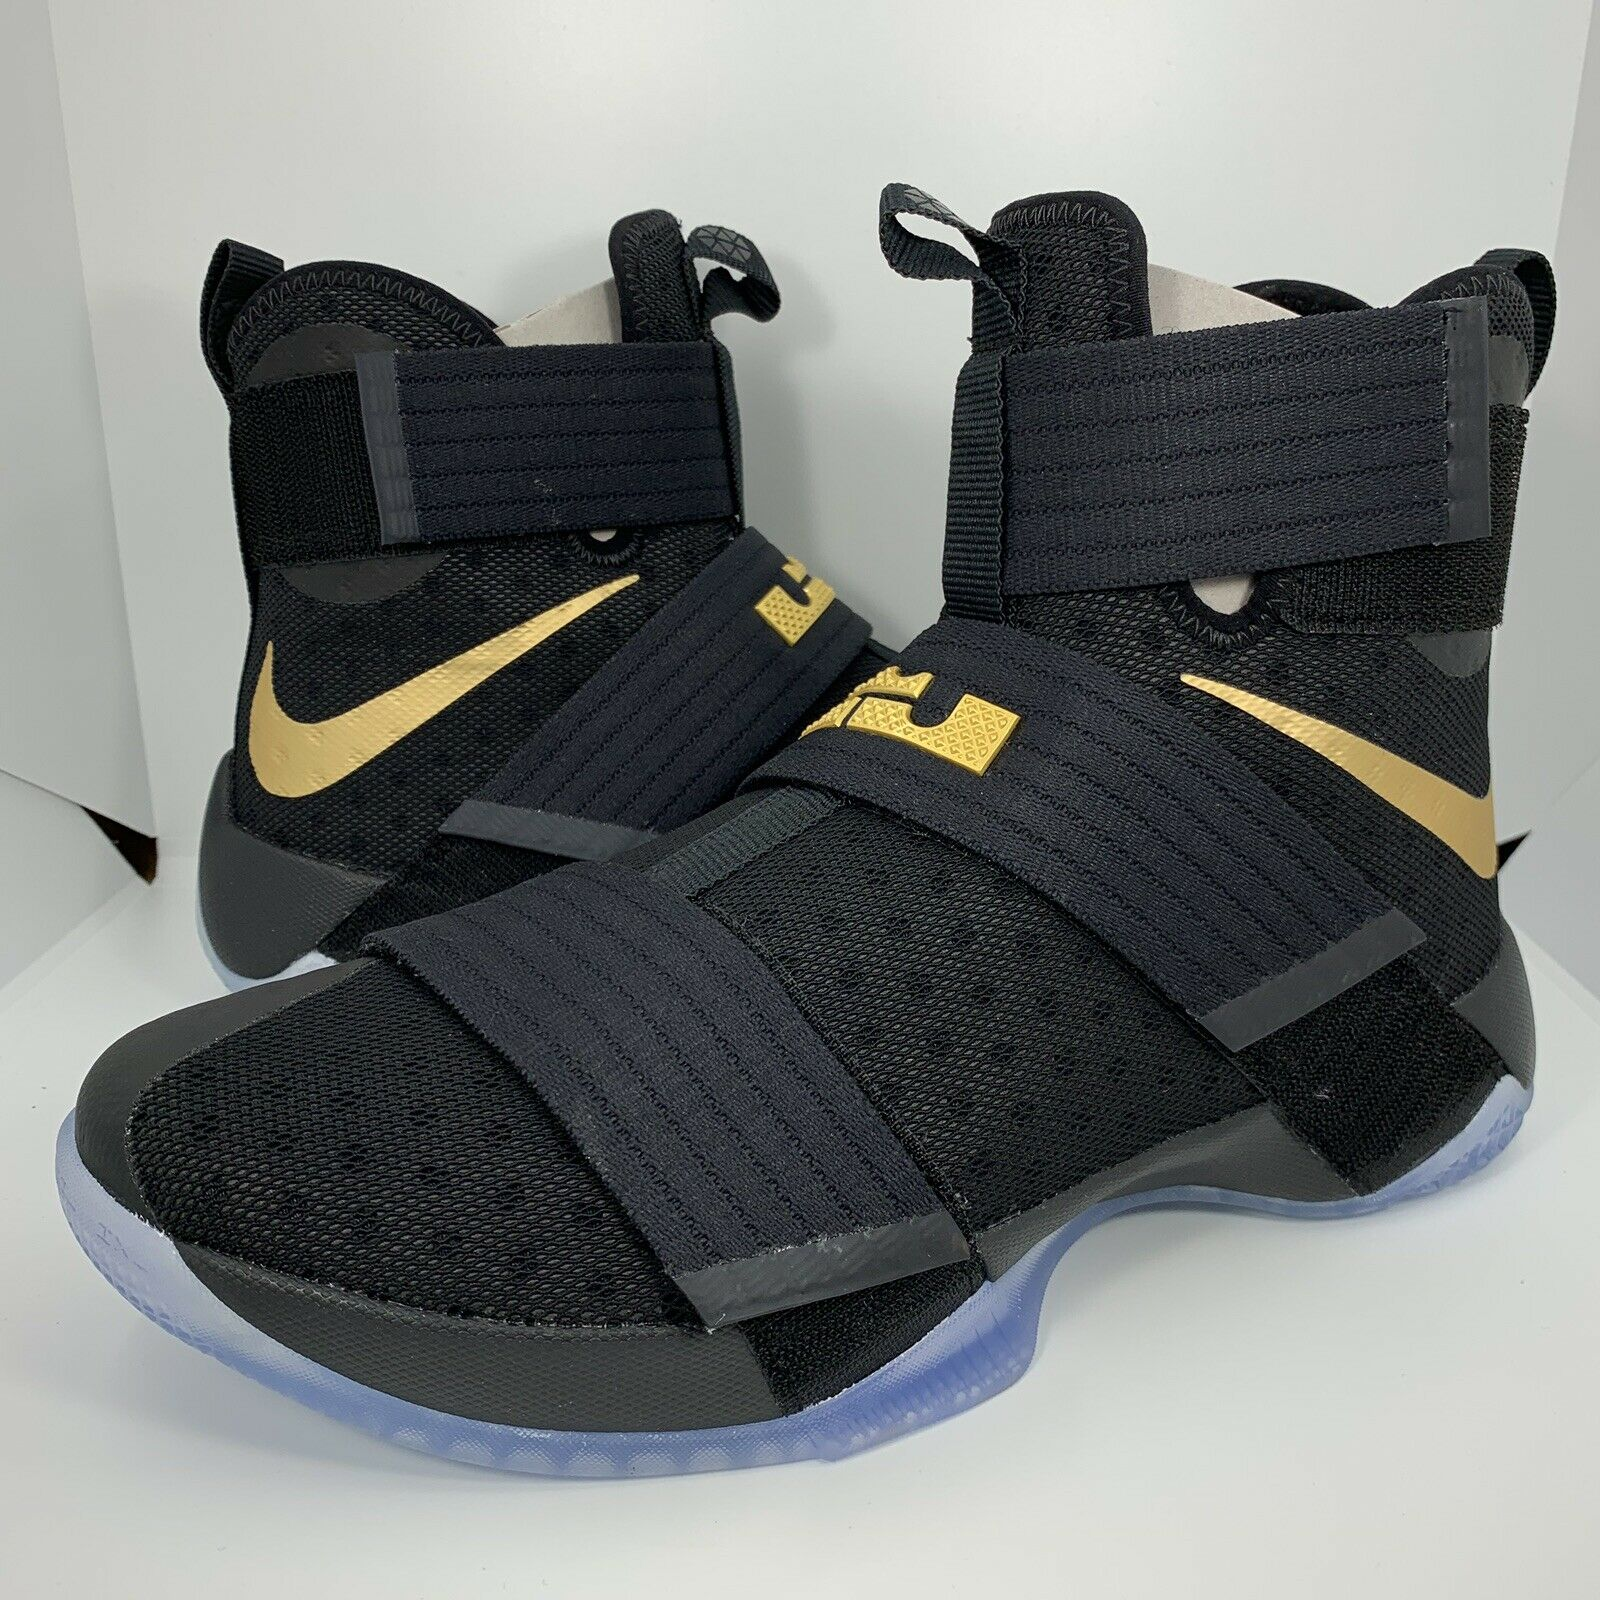 NIKE iD ZOOM LEBRON SOLDIER 10 Game 7 CHAMPIONSHIP BLACK gold Men's Size 9